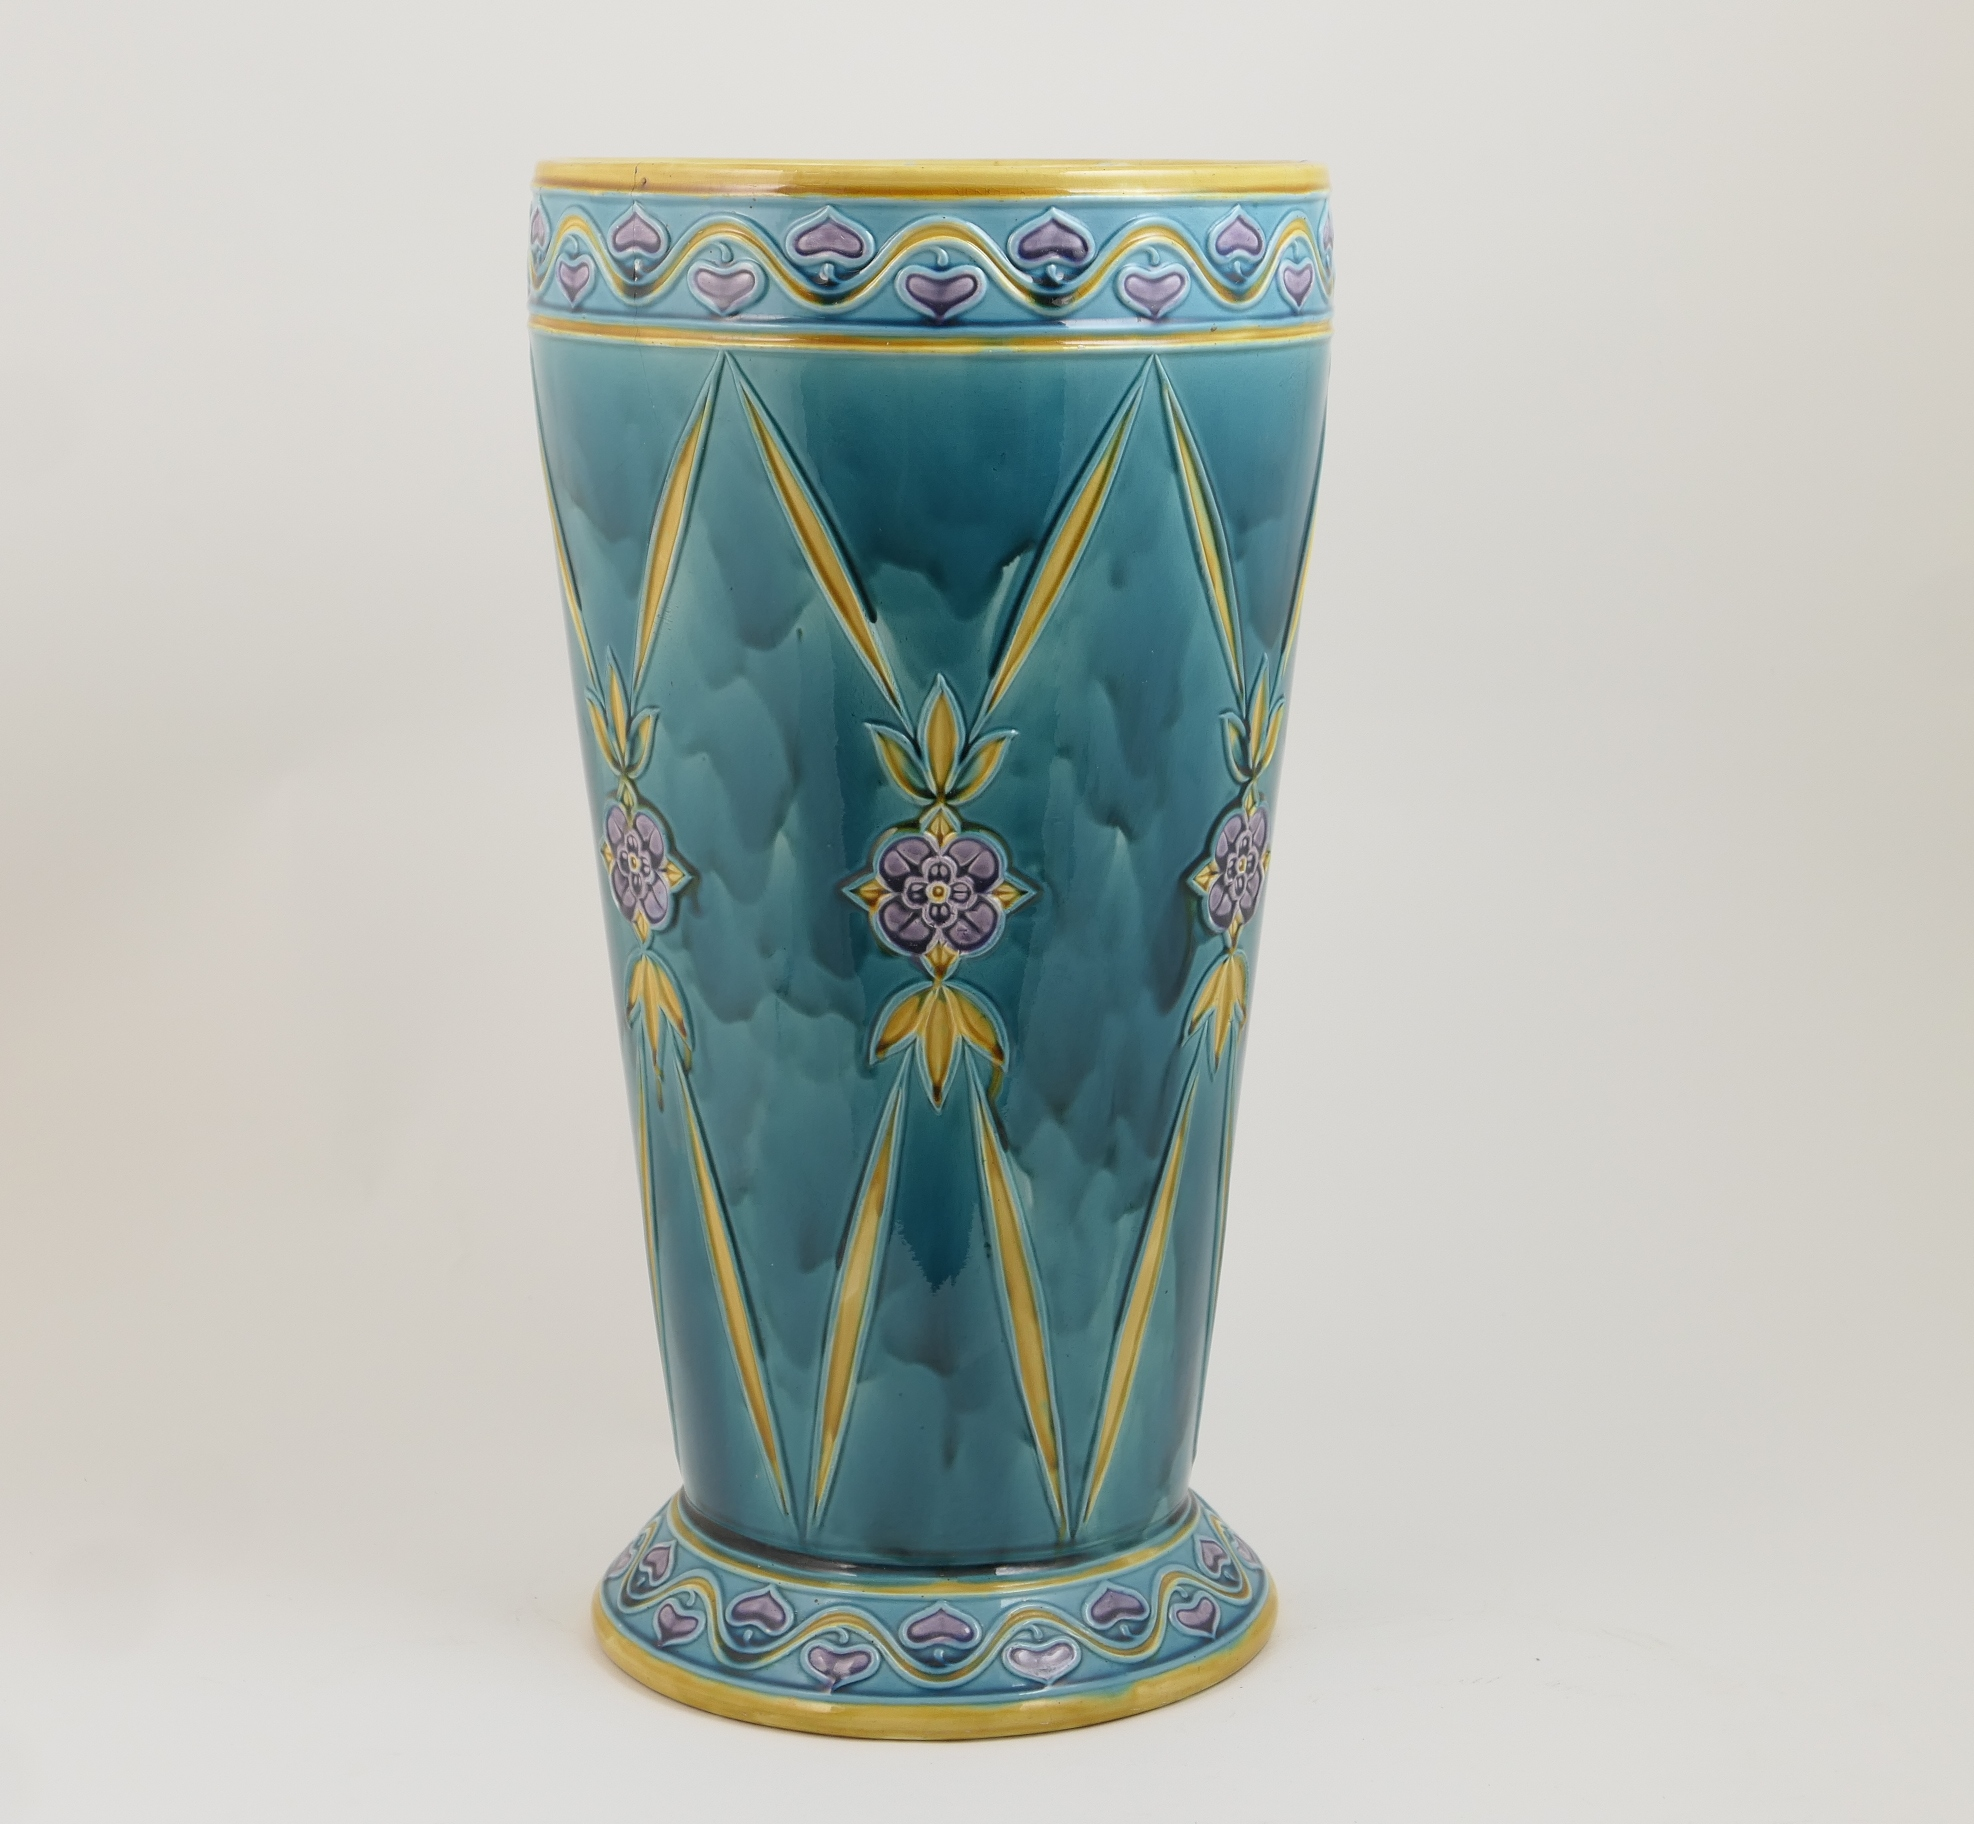 Lot 48 - Minton Secessionist majolica stick stand, date code for 1914, tapered cylinder form decorated with